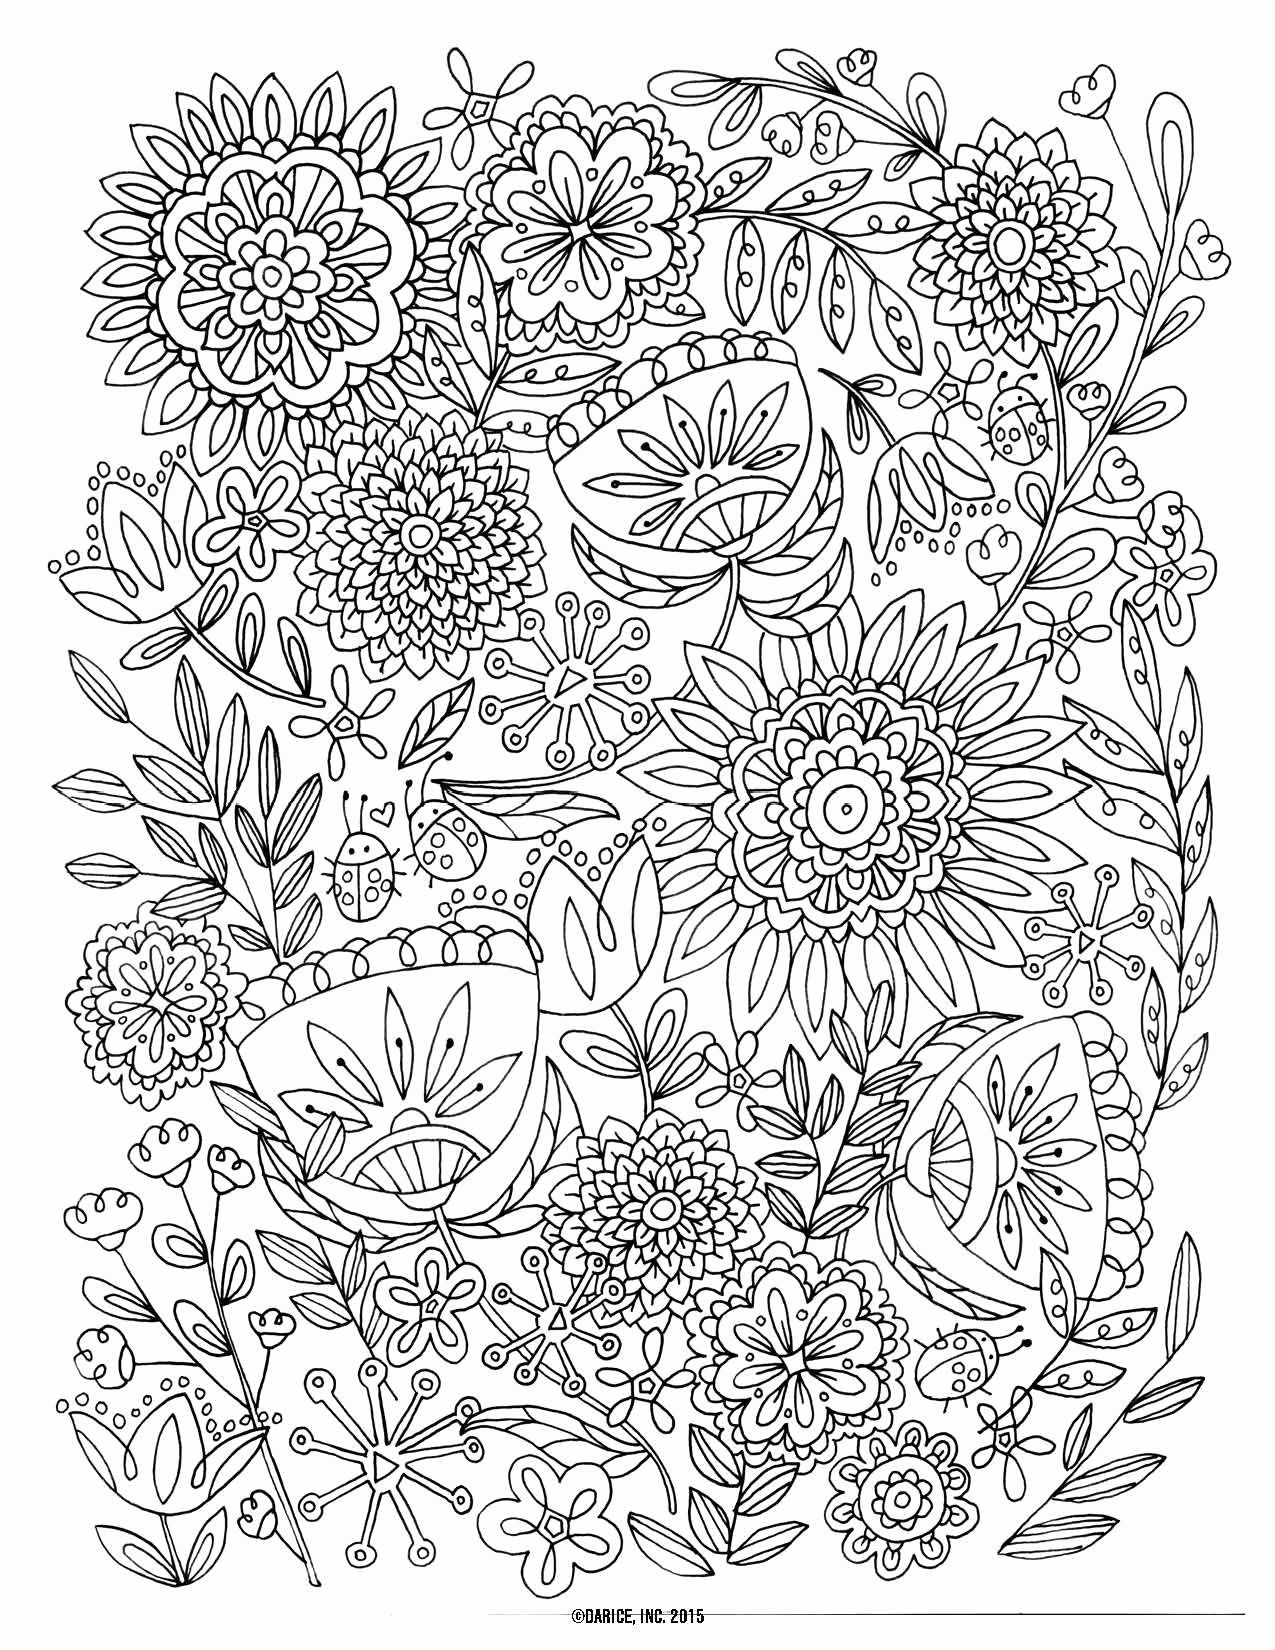 Full Size Coloring Pages For Adults Fresh Coloring Pages To Print